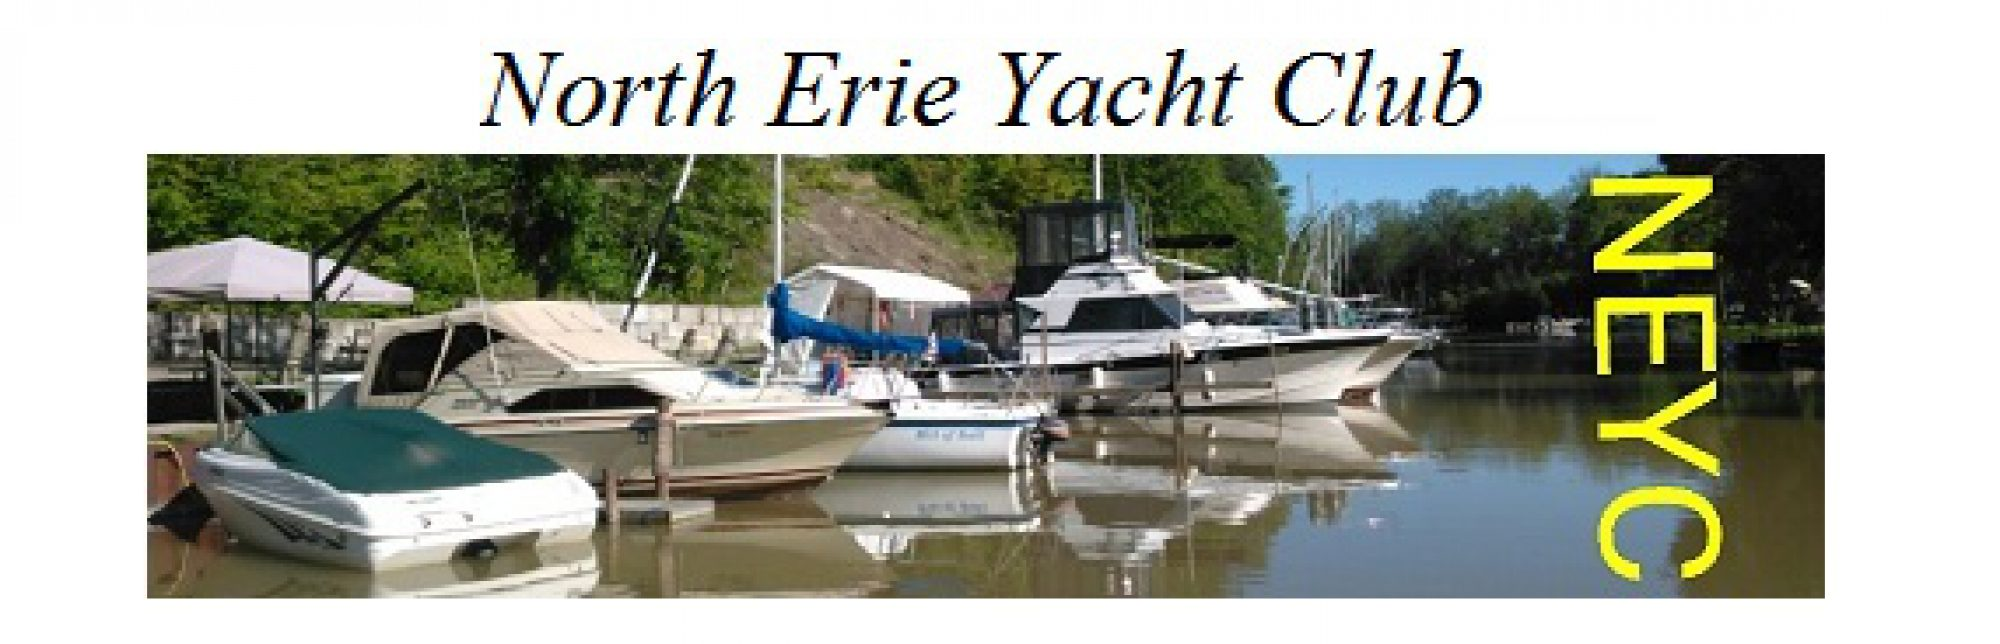 North Erie Yacht Club